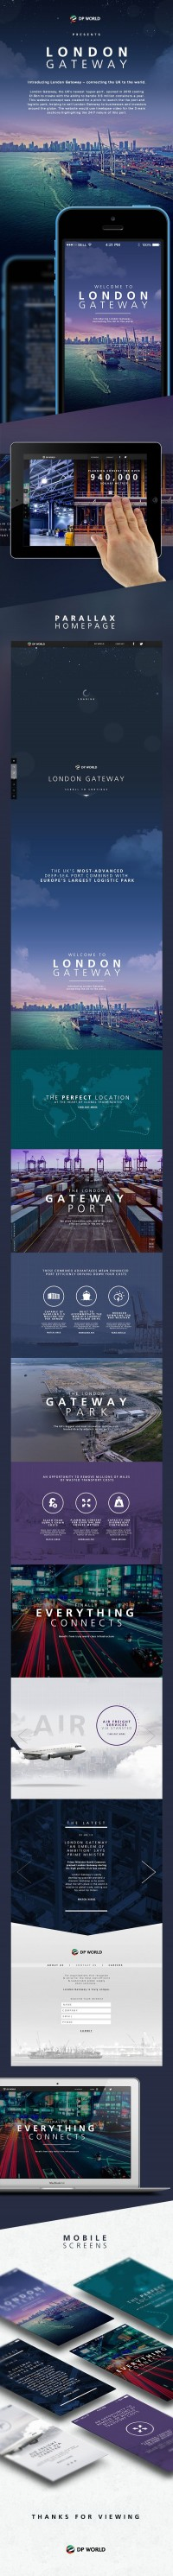 London Gateway | Web Design | Pinterest